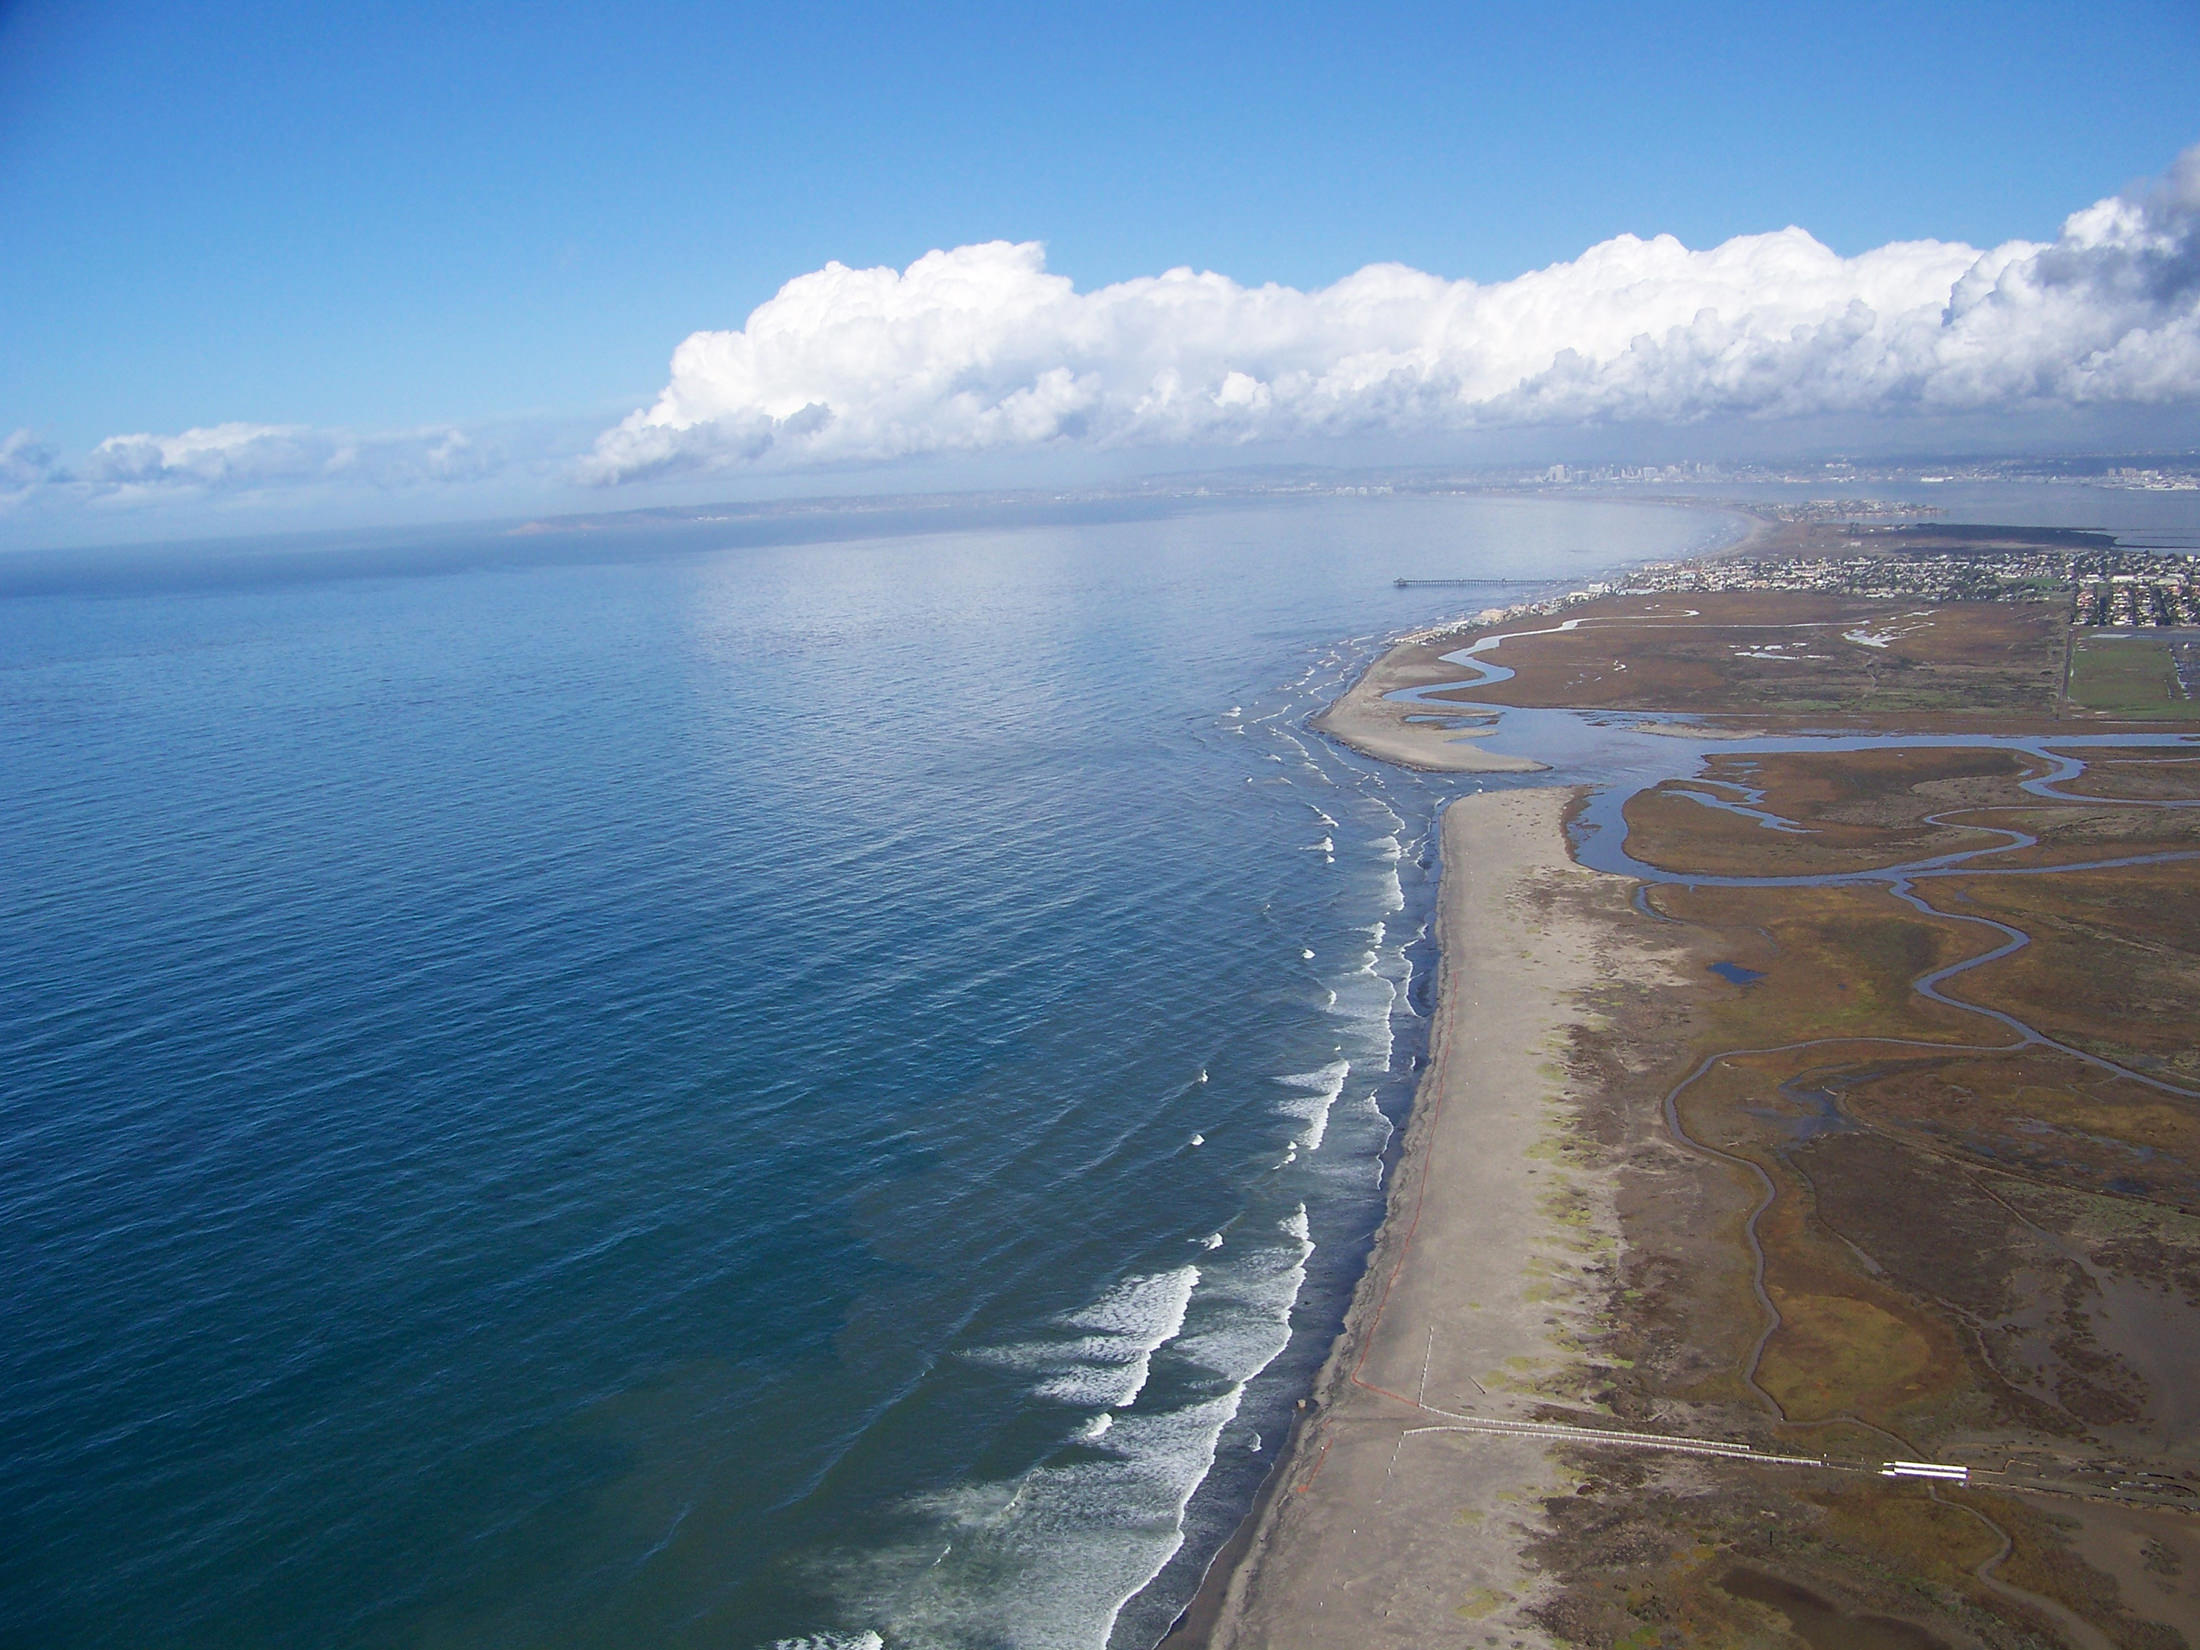 Noaa S National Ocean Service Ocean Images Estuary On The